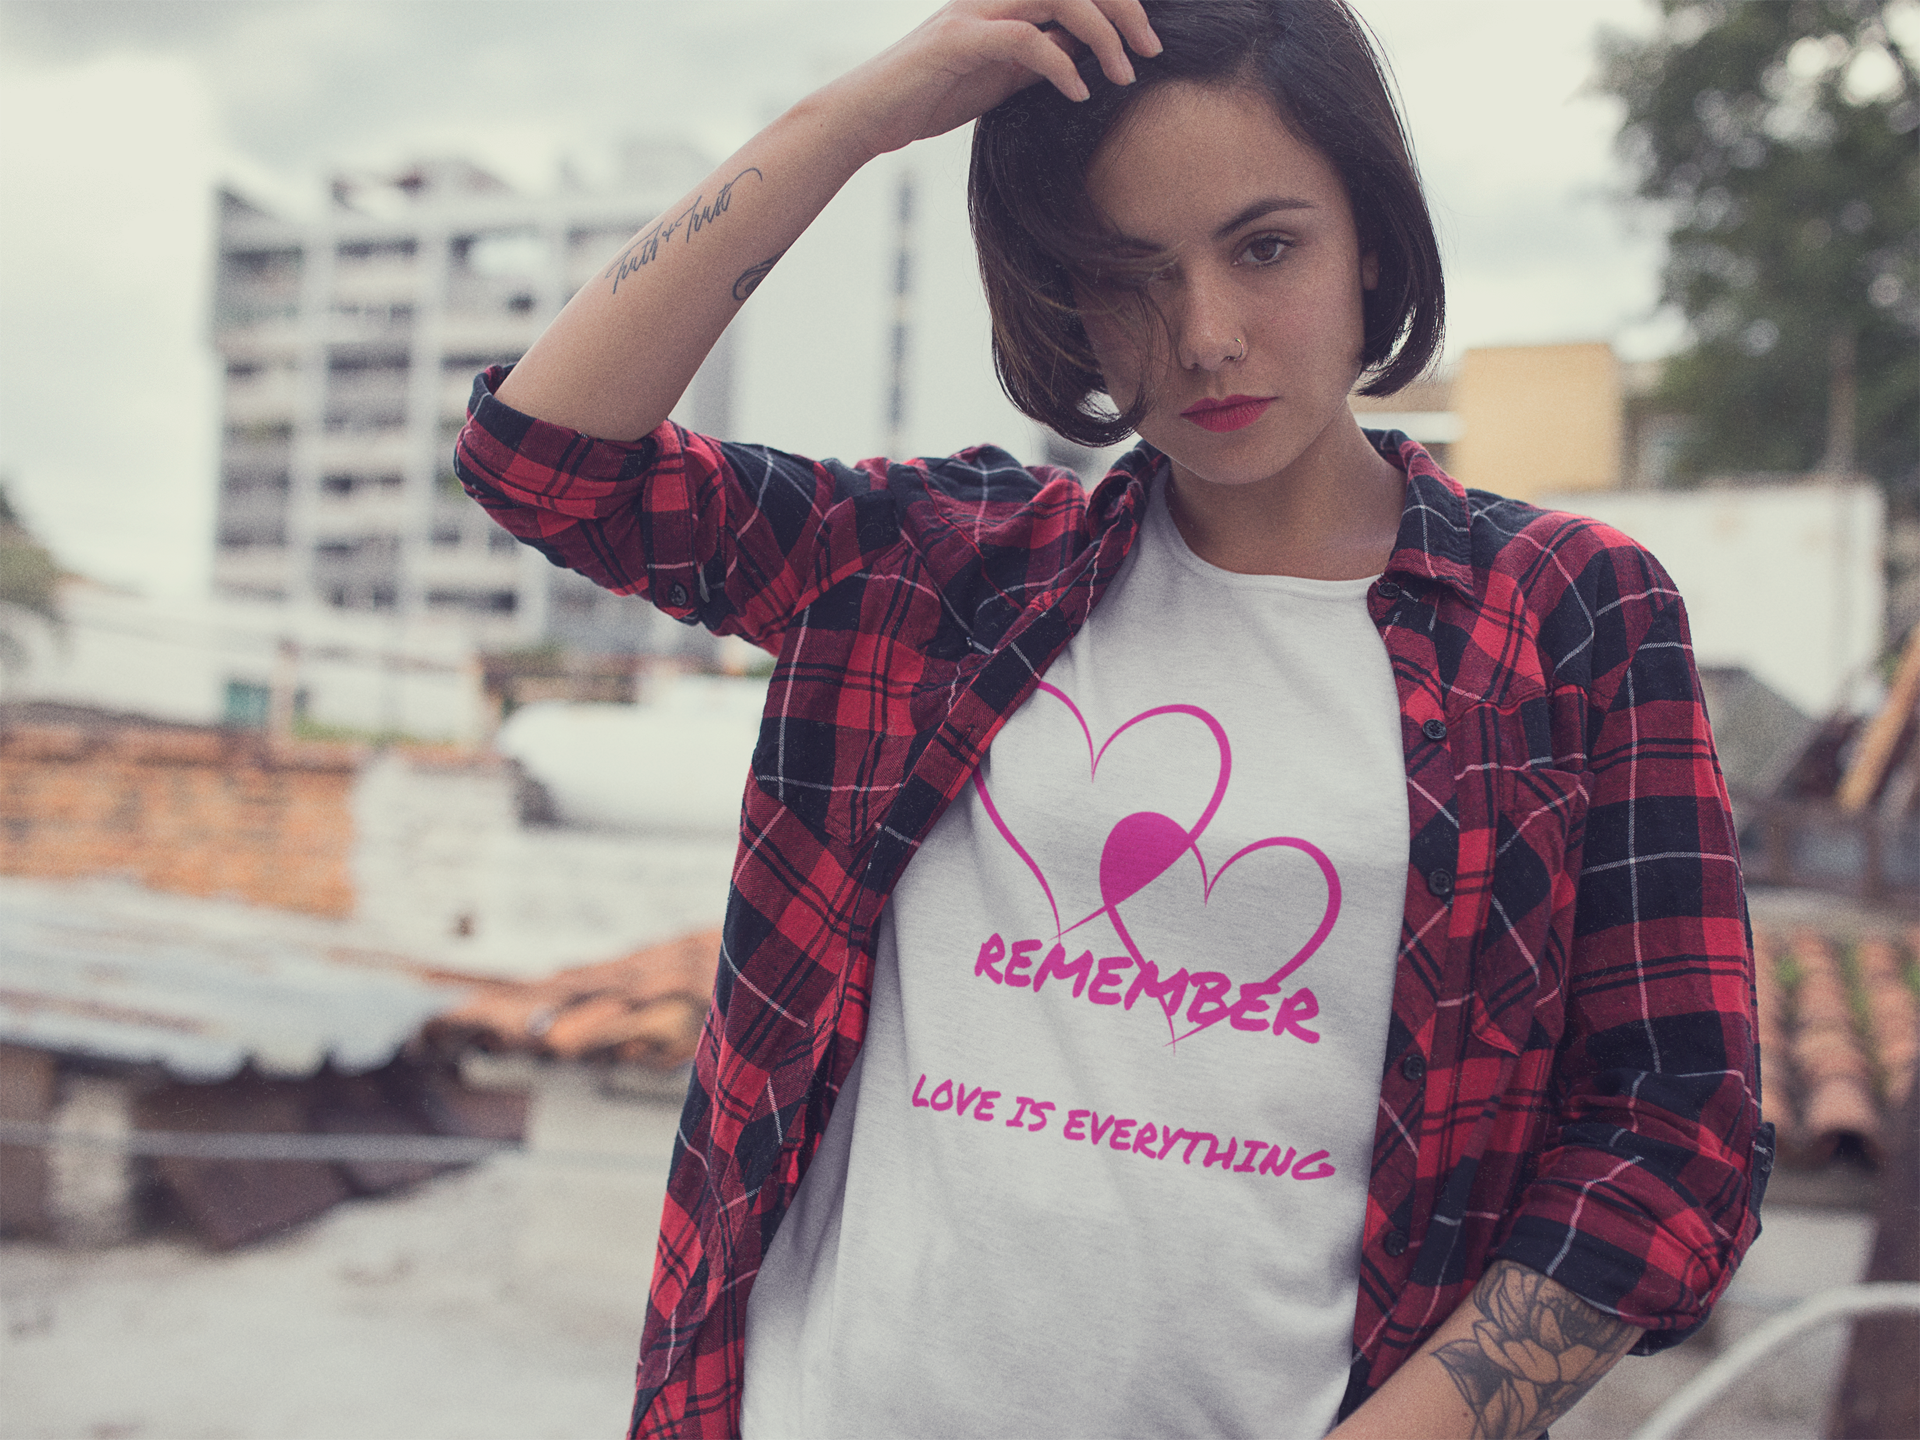 Love is everything Tee check it out at www.teespring.com/remember-love-is-everything ! More Love Fashion in our store at https://teespring.com/de/stores/power-of-love